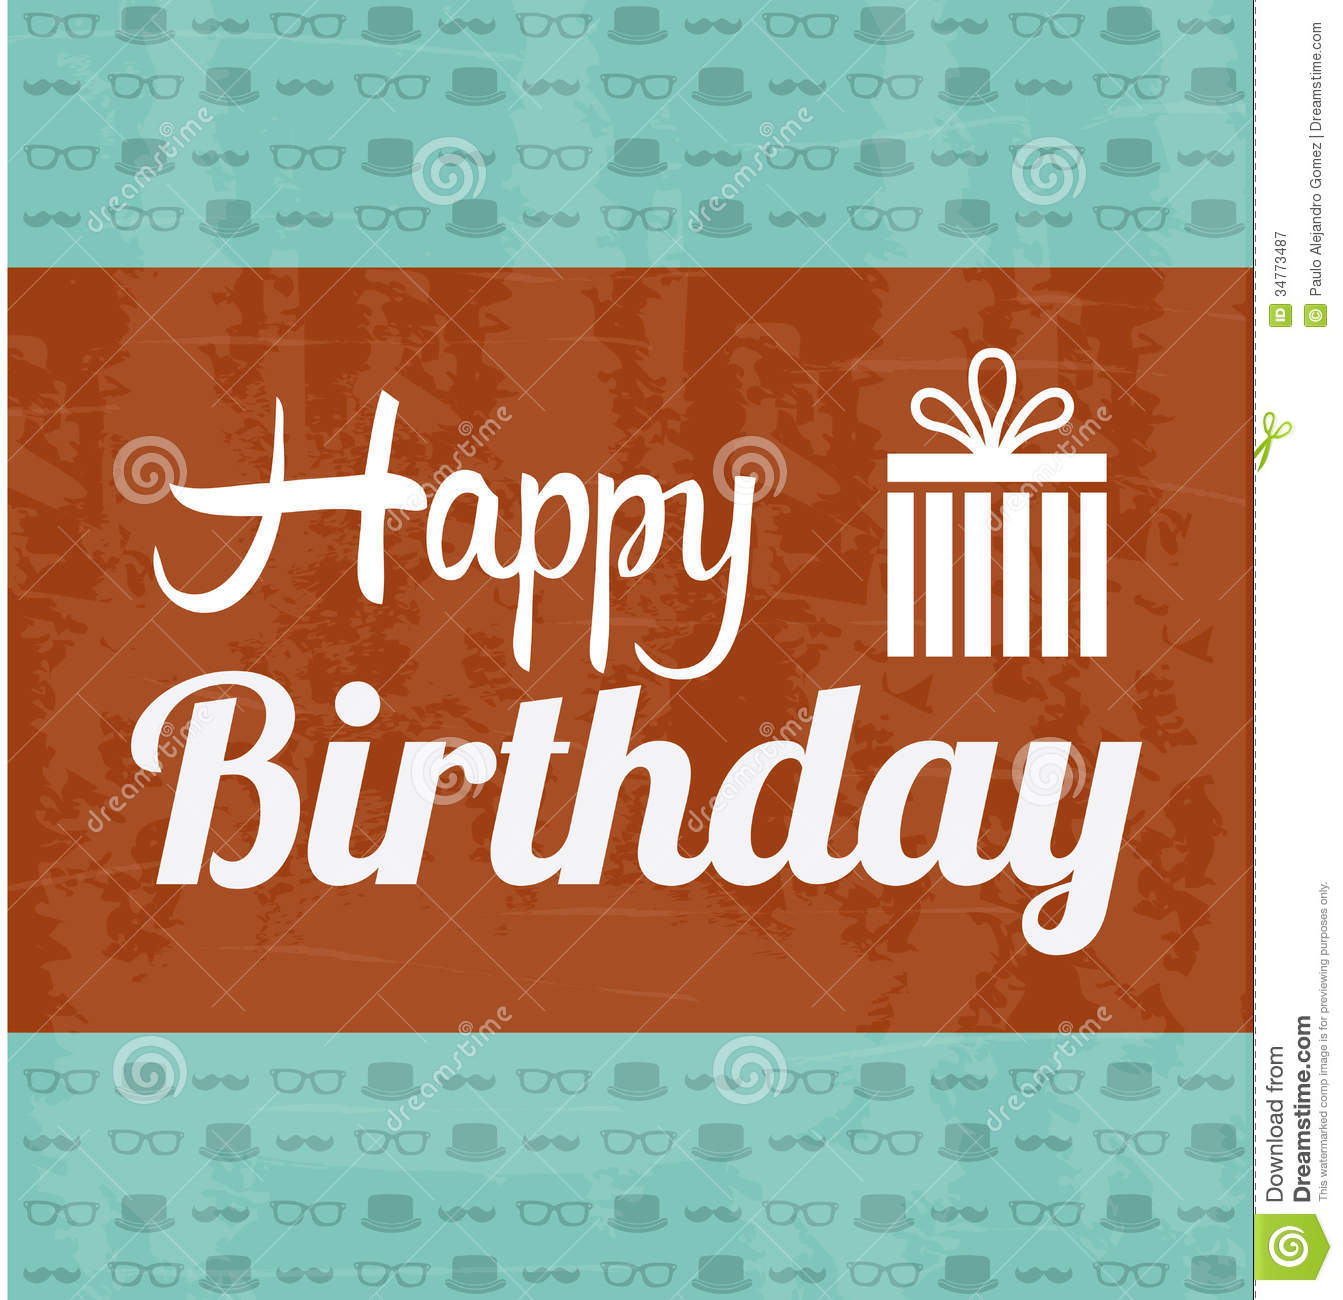 happy birthday labels free ; happy-birthday-label-over-pattern-background-illustration-34773487